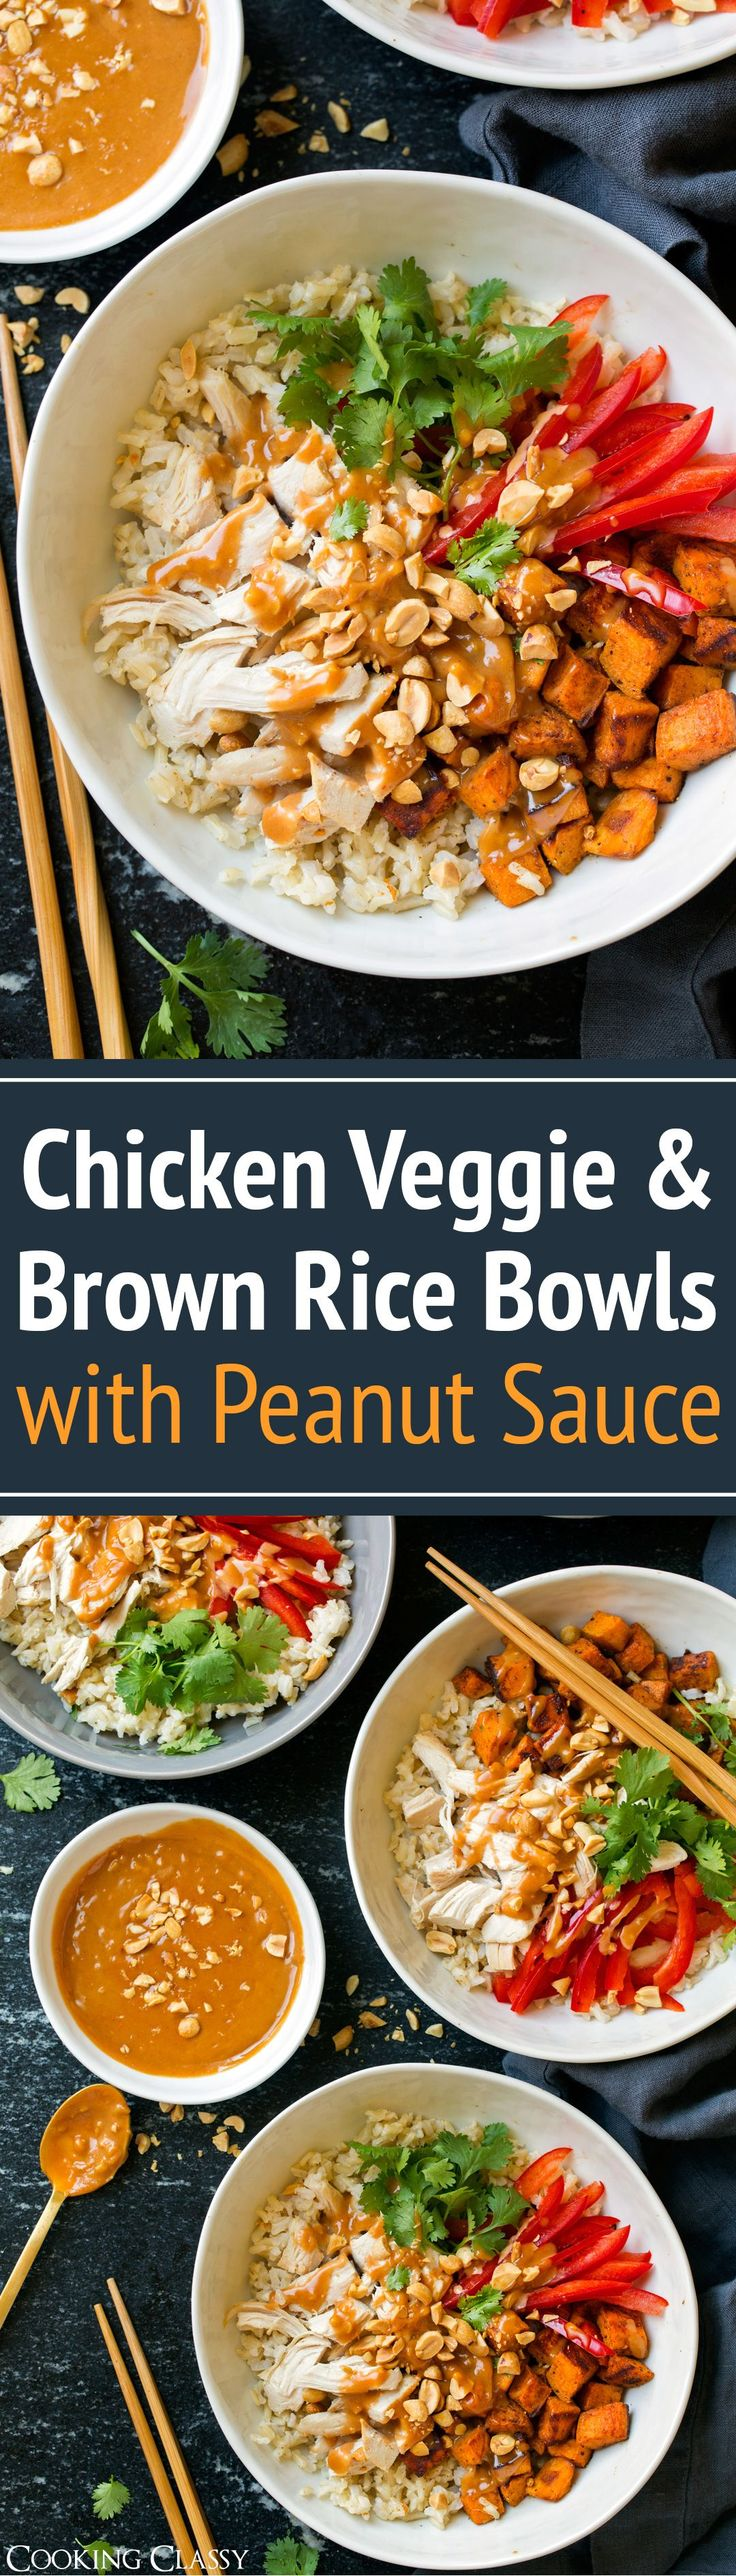 Chicken Veggie and Brown Rice Bowls with Peanut Sauce - Cooking Classy